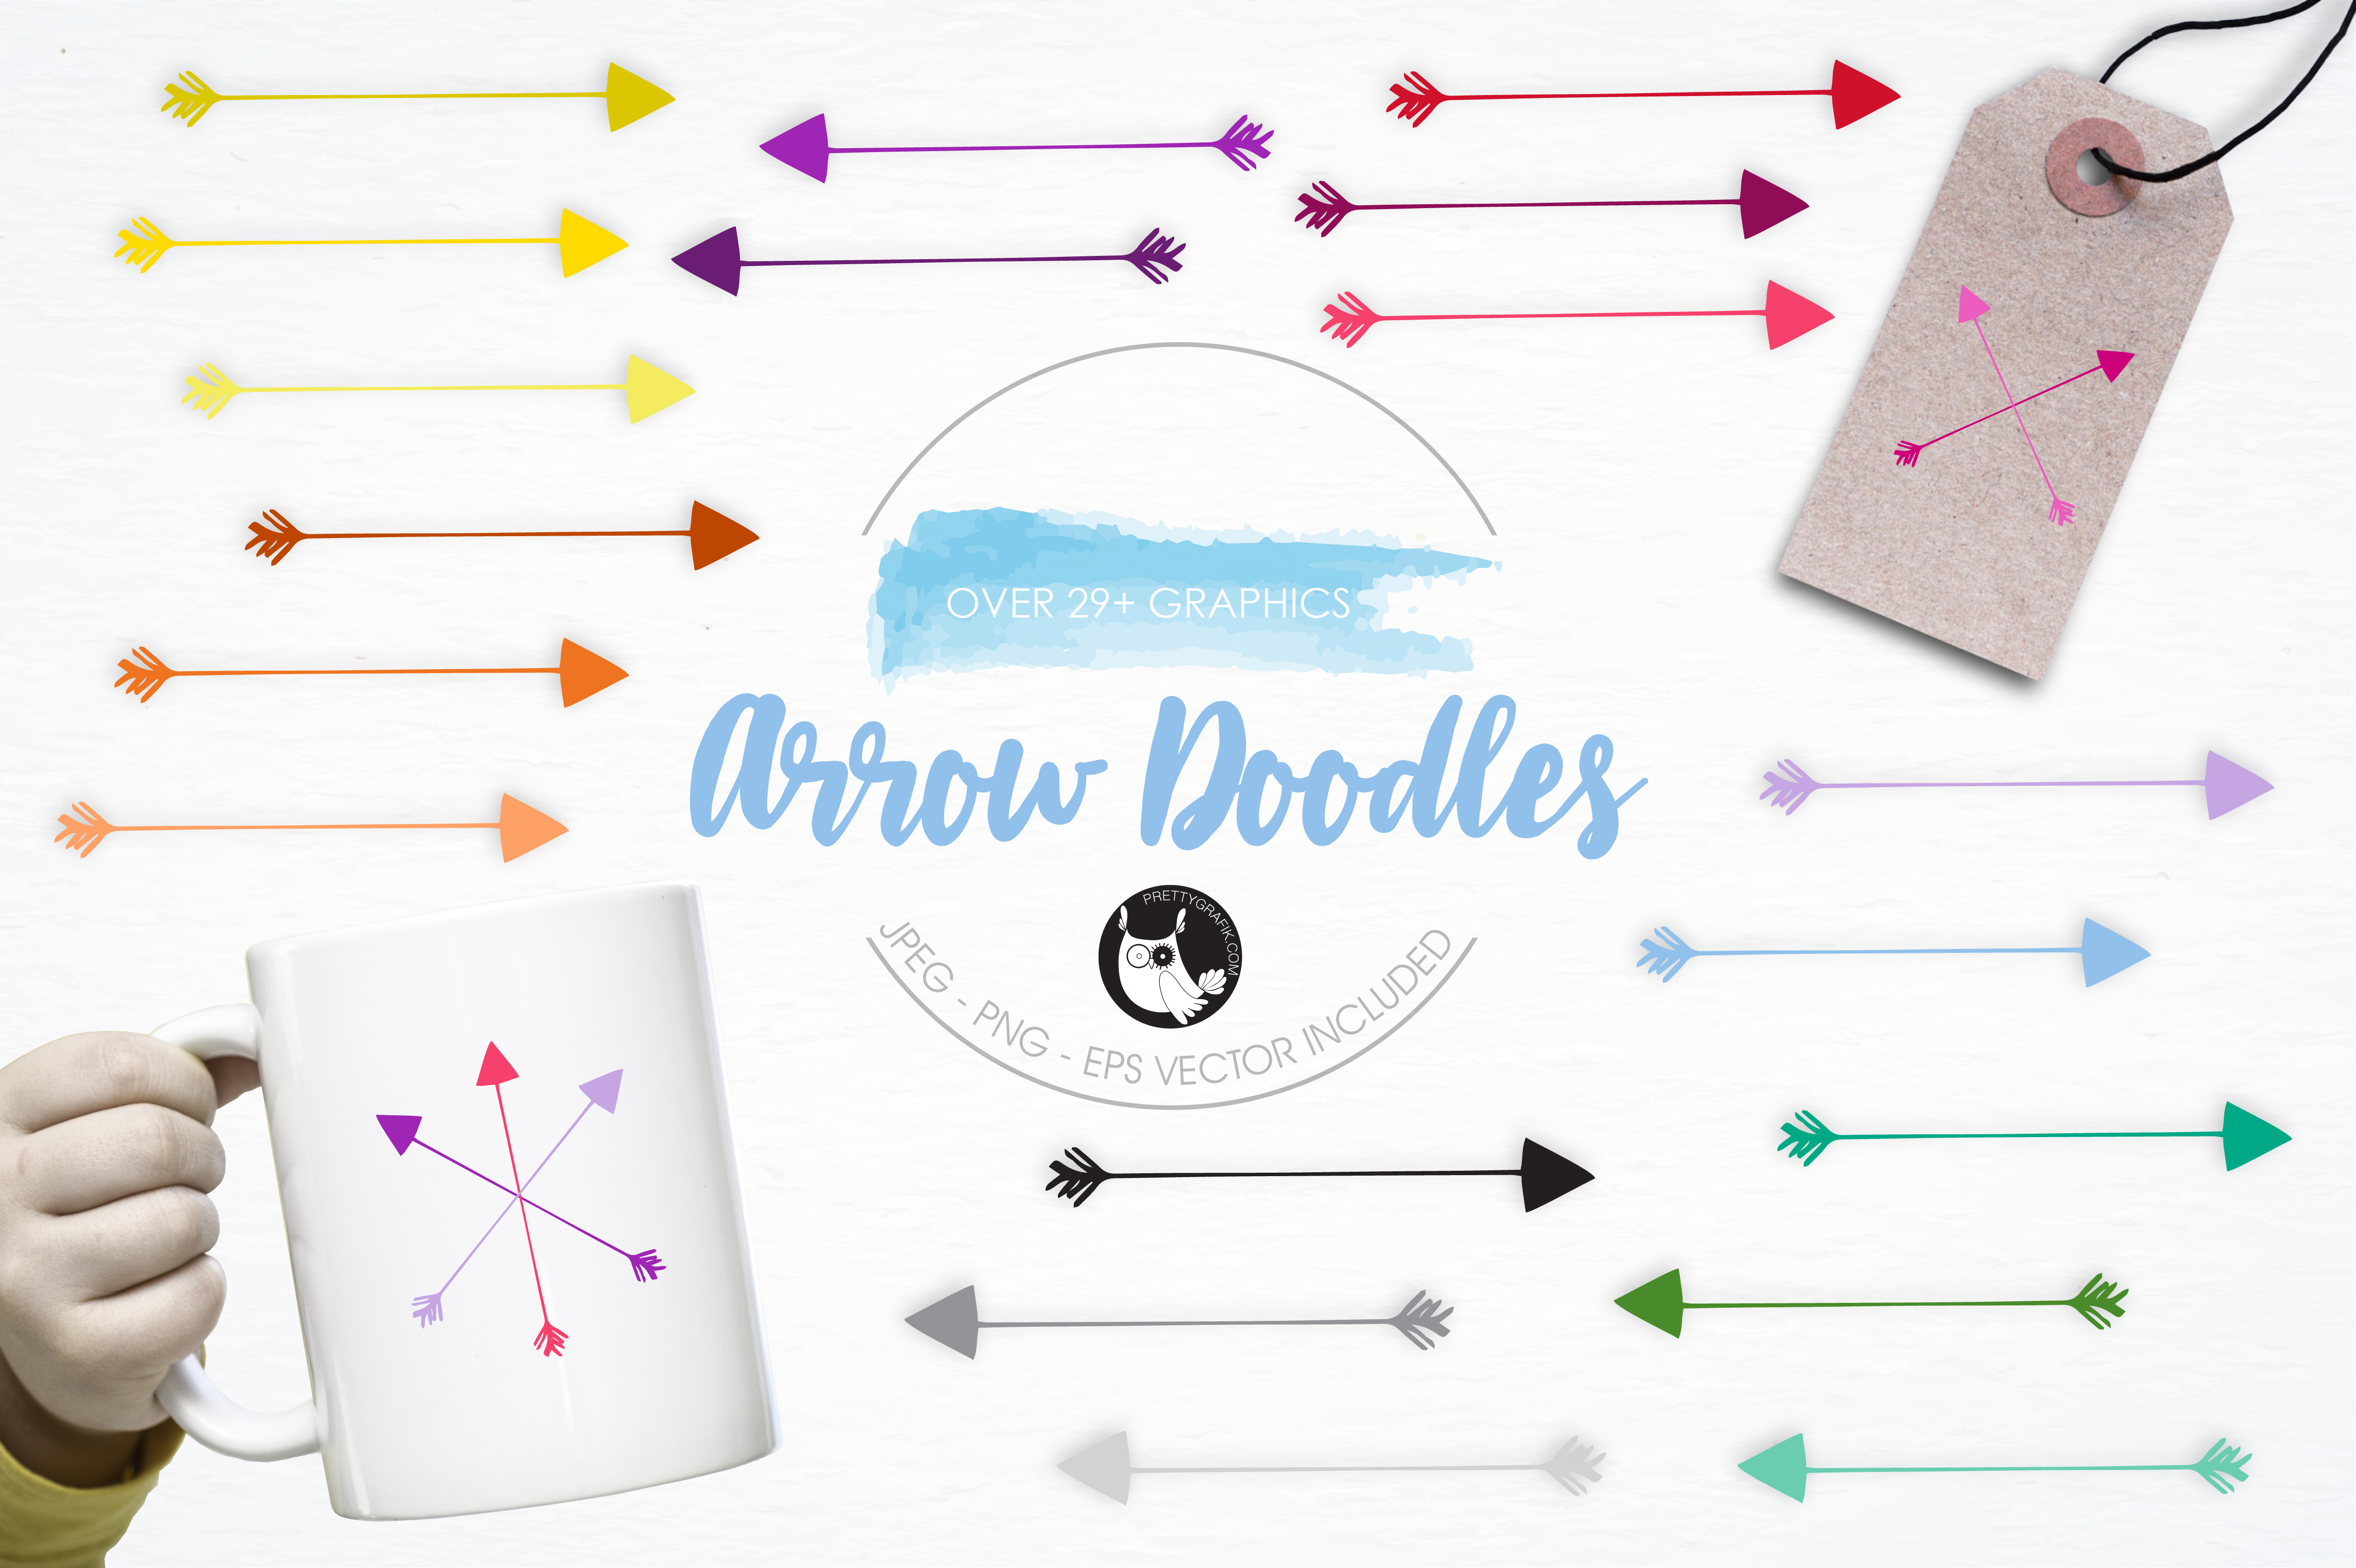 Download Free Arrow Doodles Graphic By Prettygrafik Creative Fabrica for Cricut Explore, Silhouette and other cutting machines.